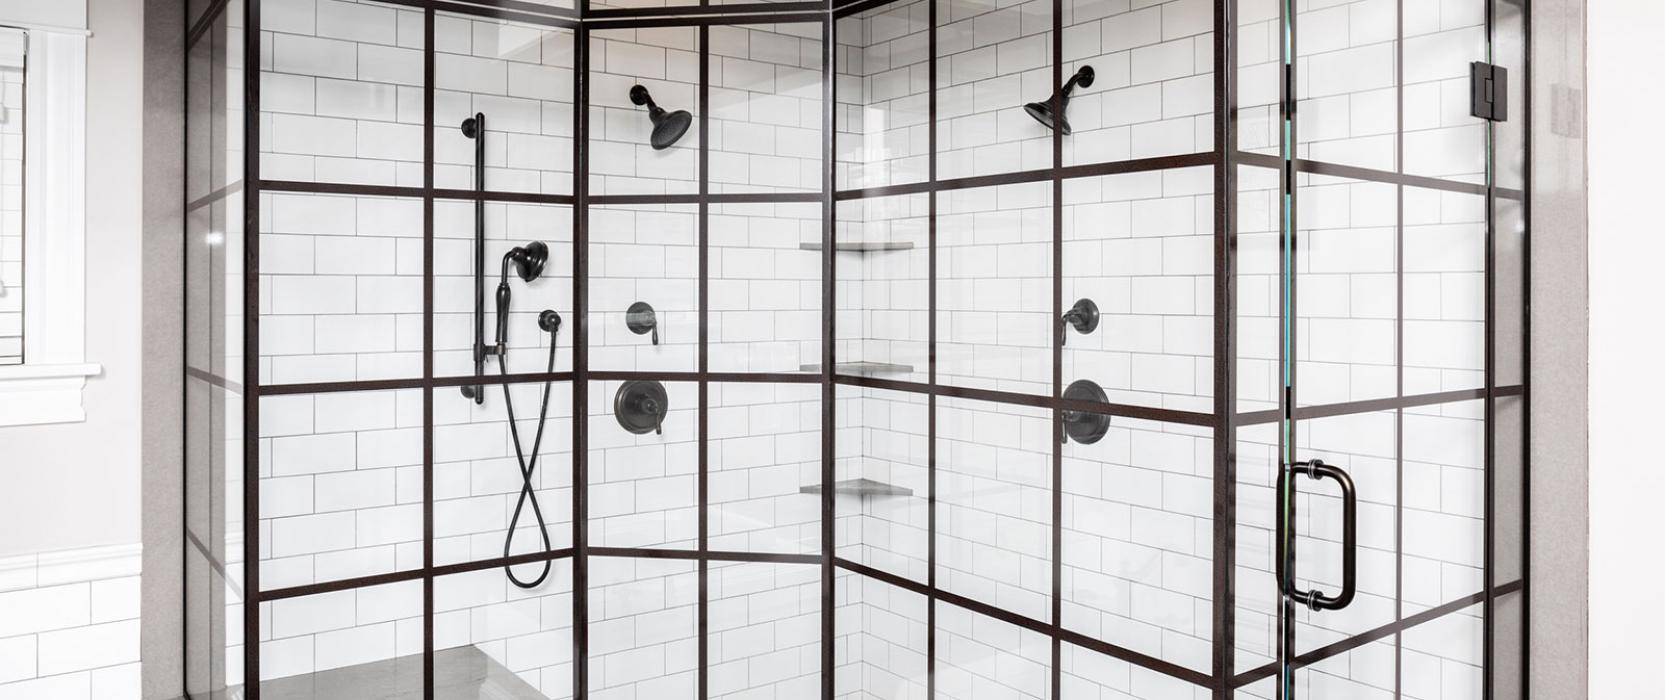 WOON-Tech in-glass printing, grid shower